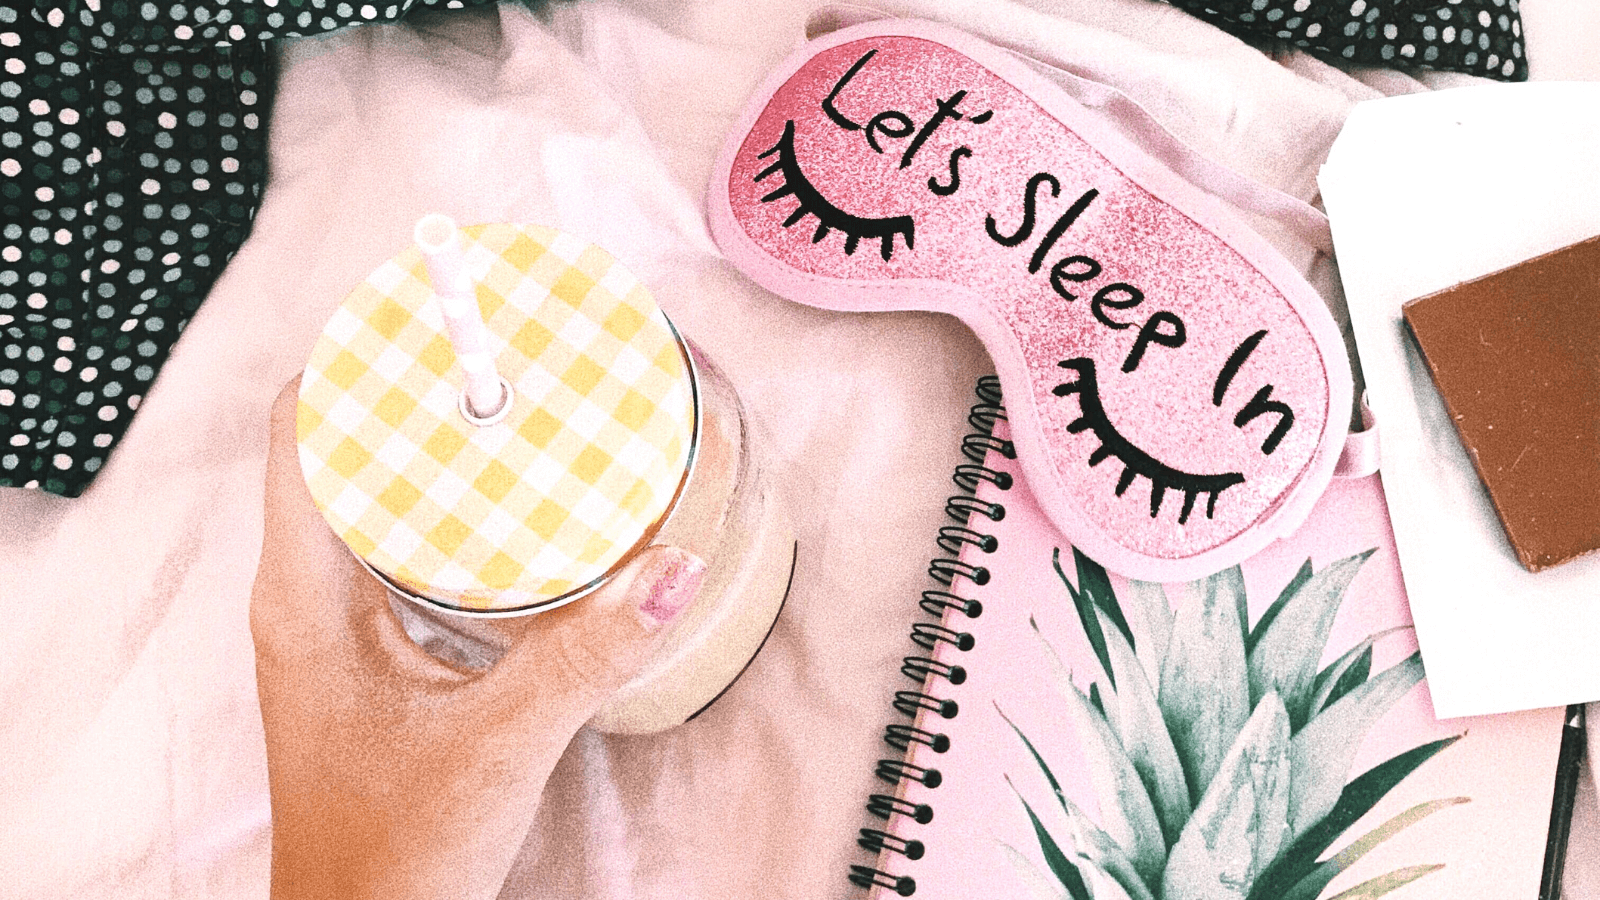 18 Proven, Healthy Ways to Sleep Better at Night and Wake Up Rested